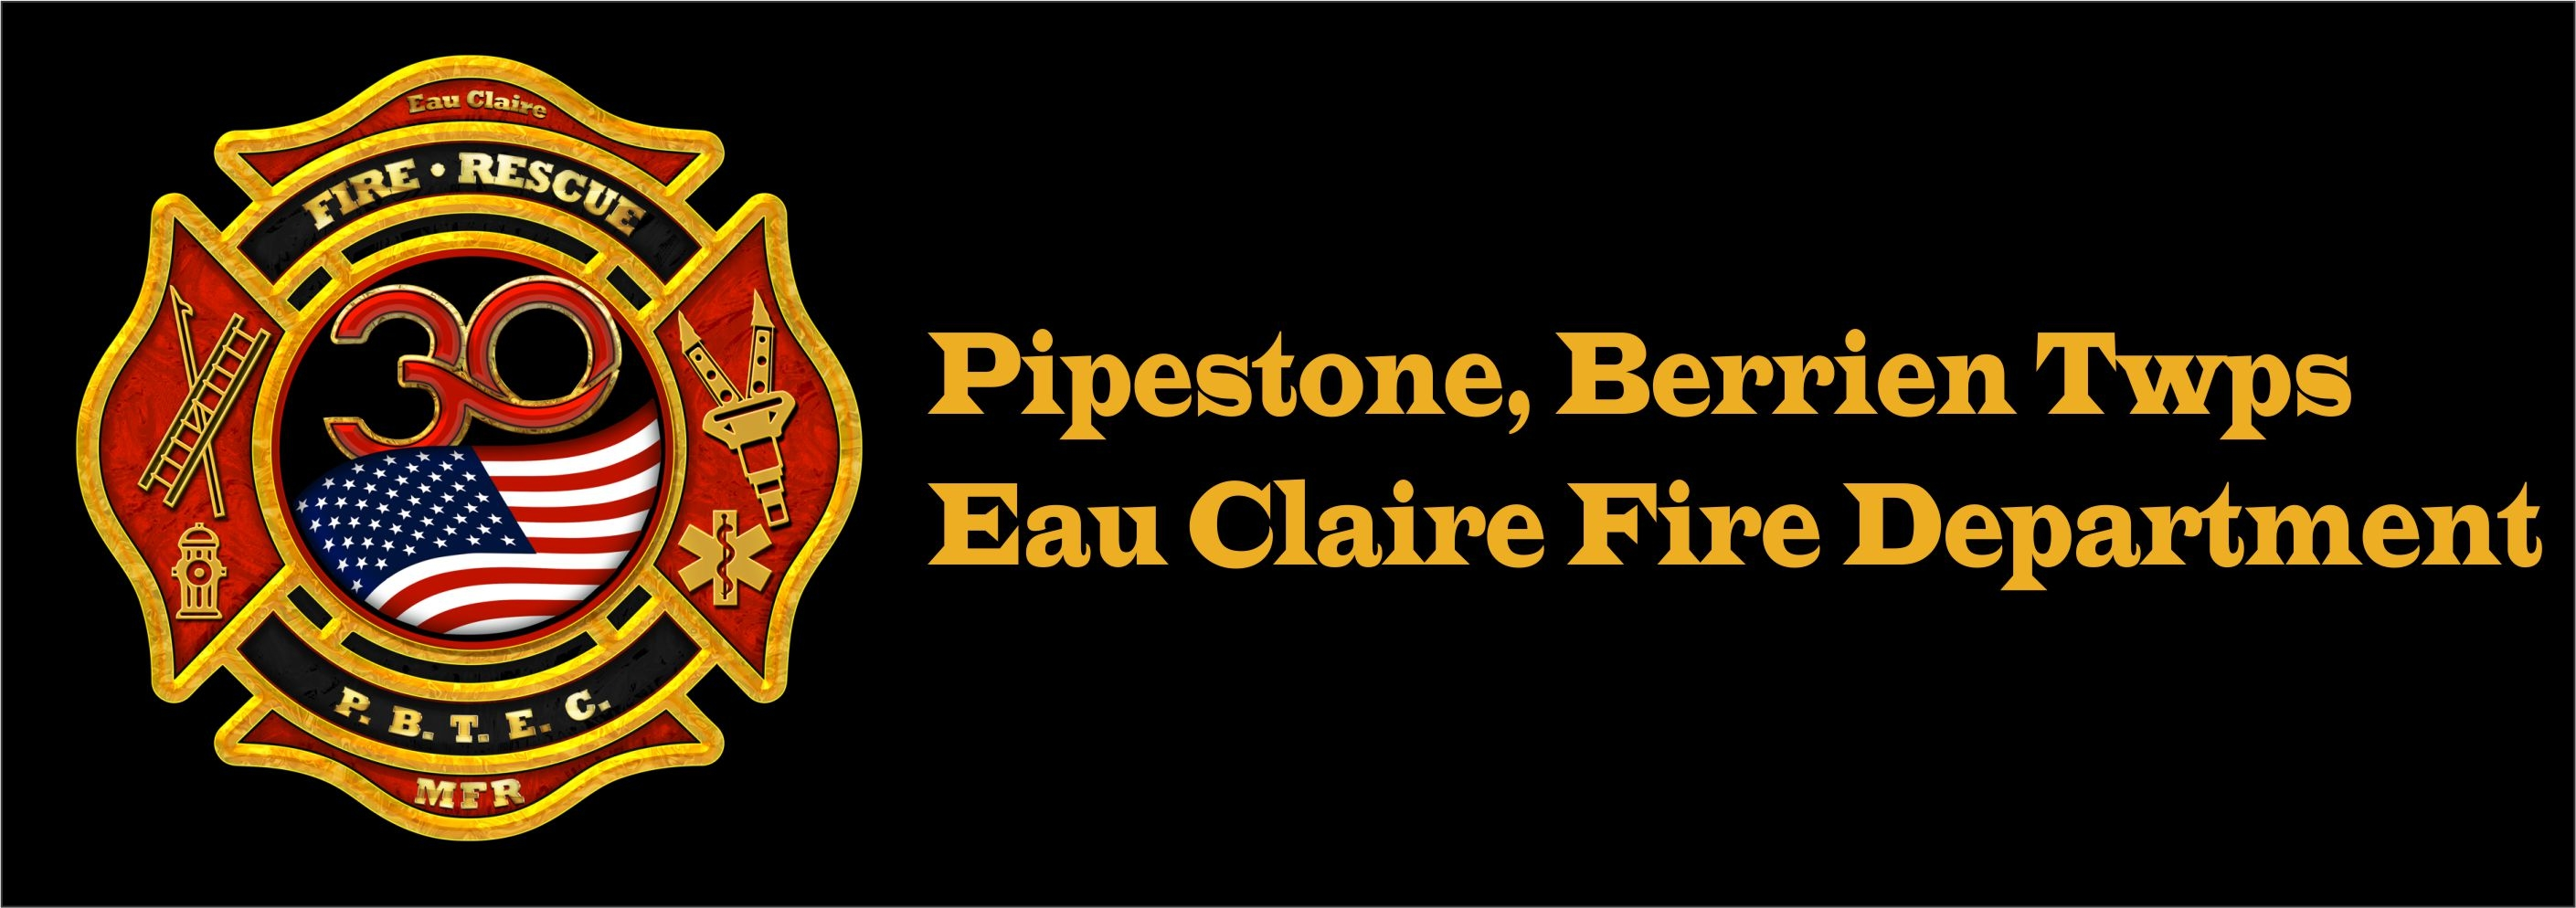 Eau Claire Fire Department